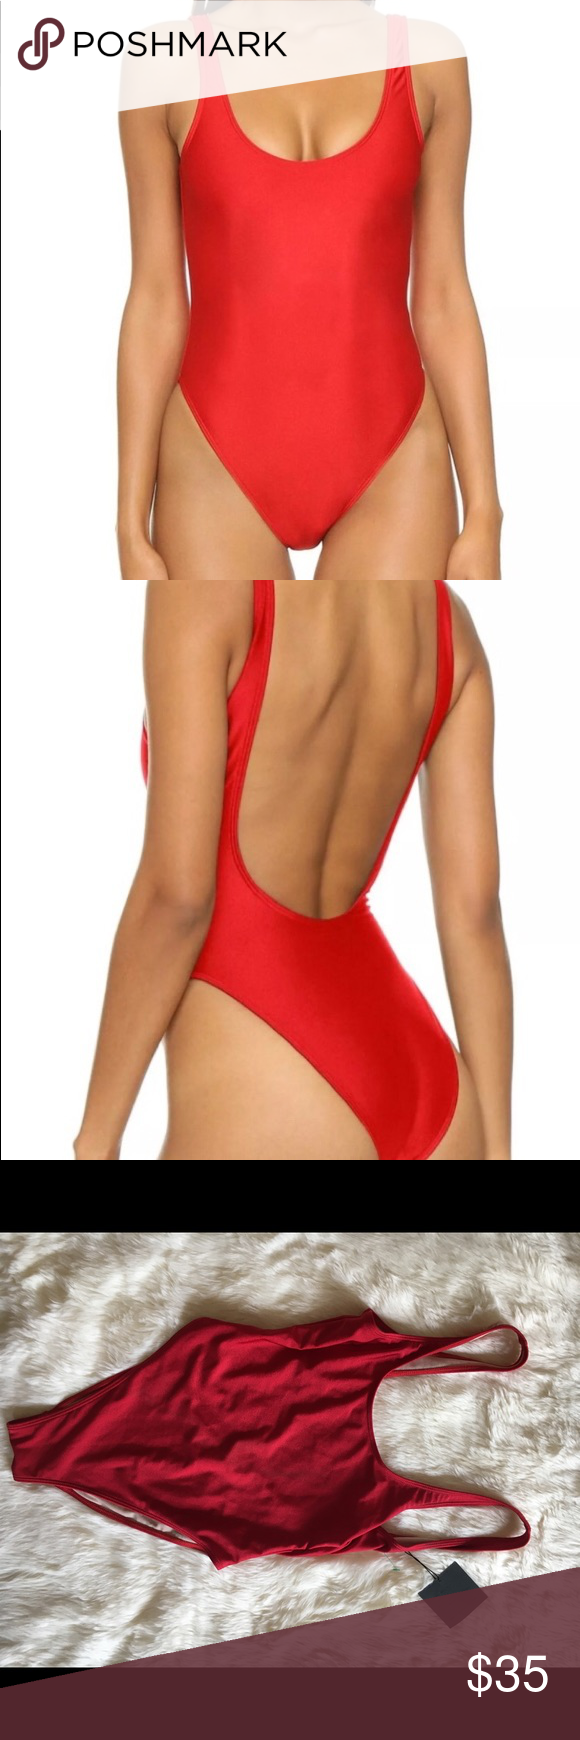 9ecbeb479ae Dixperfect Classic Red swimsuit 90's vibe size S Please see detailed  description in the last photo. dixperfect Swim One Pieces